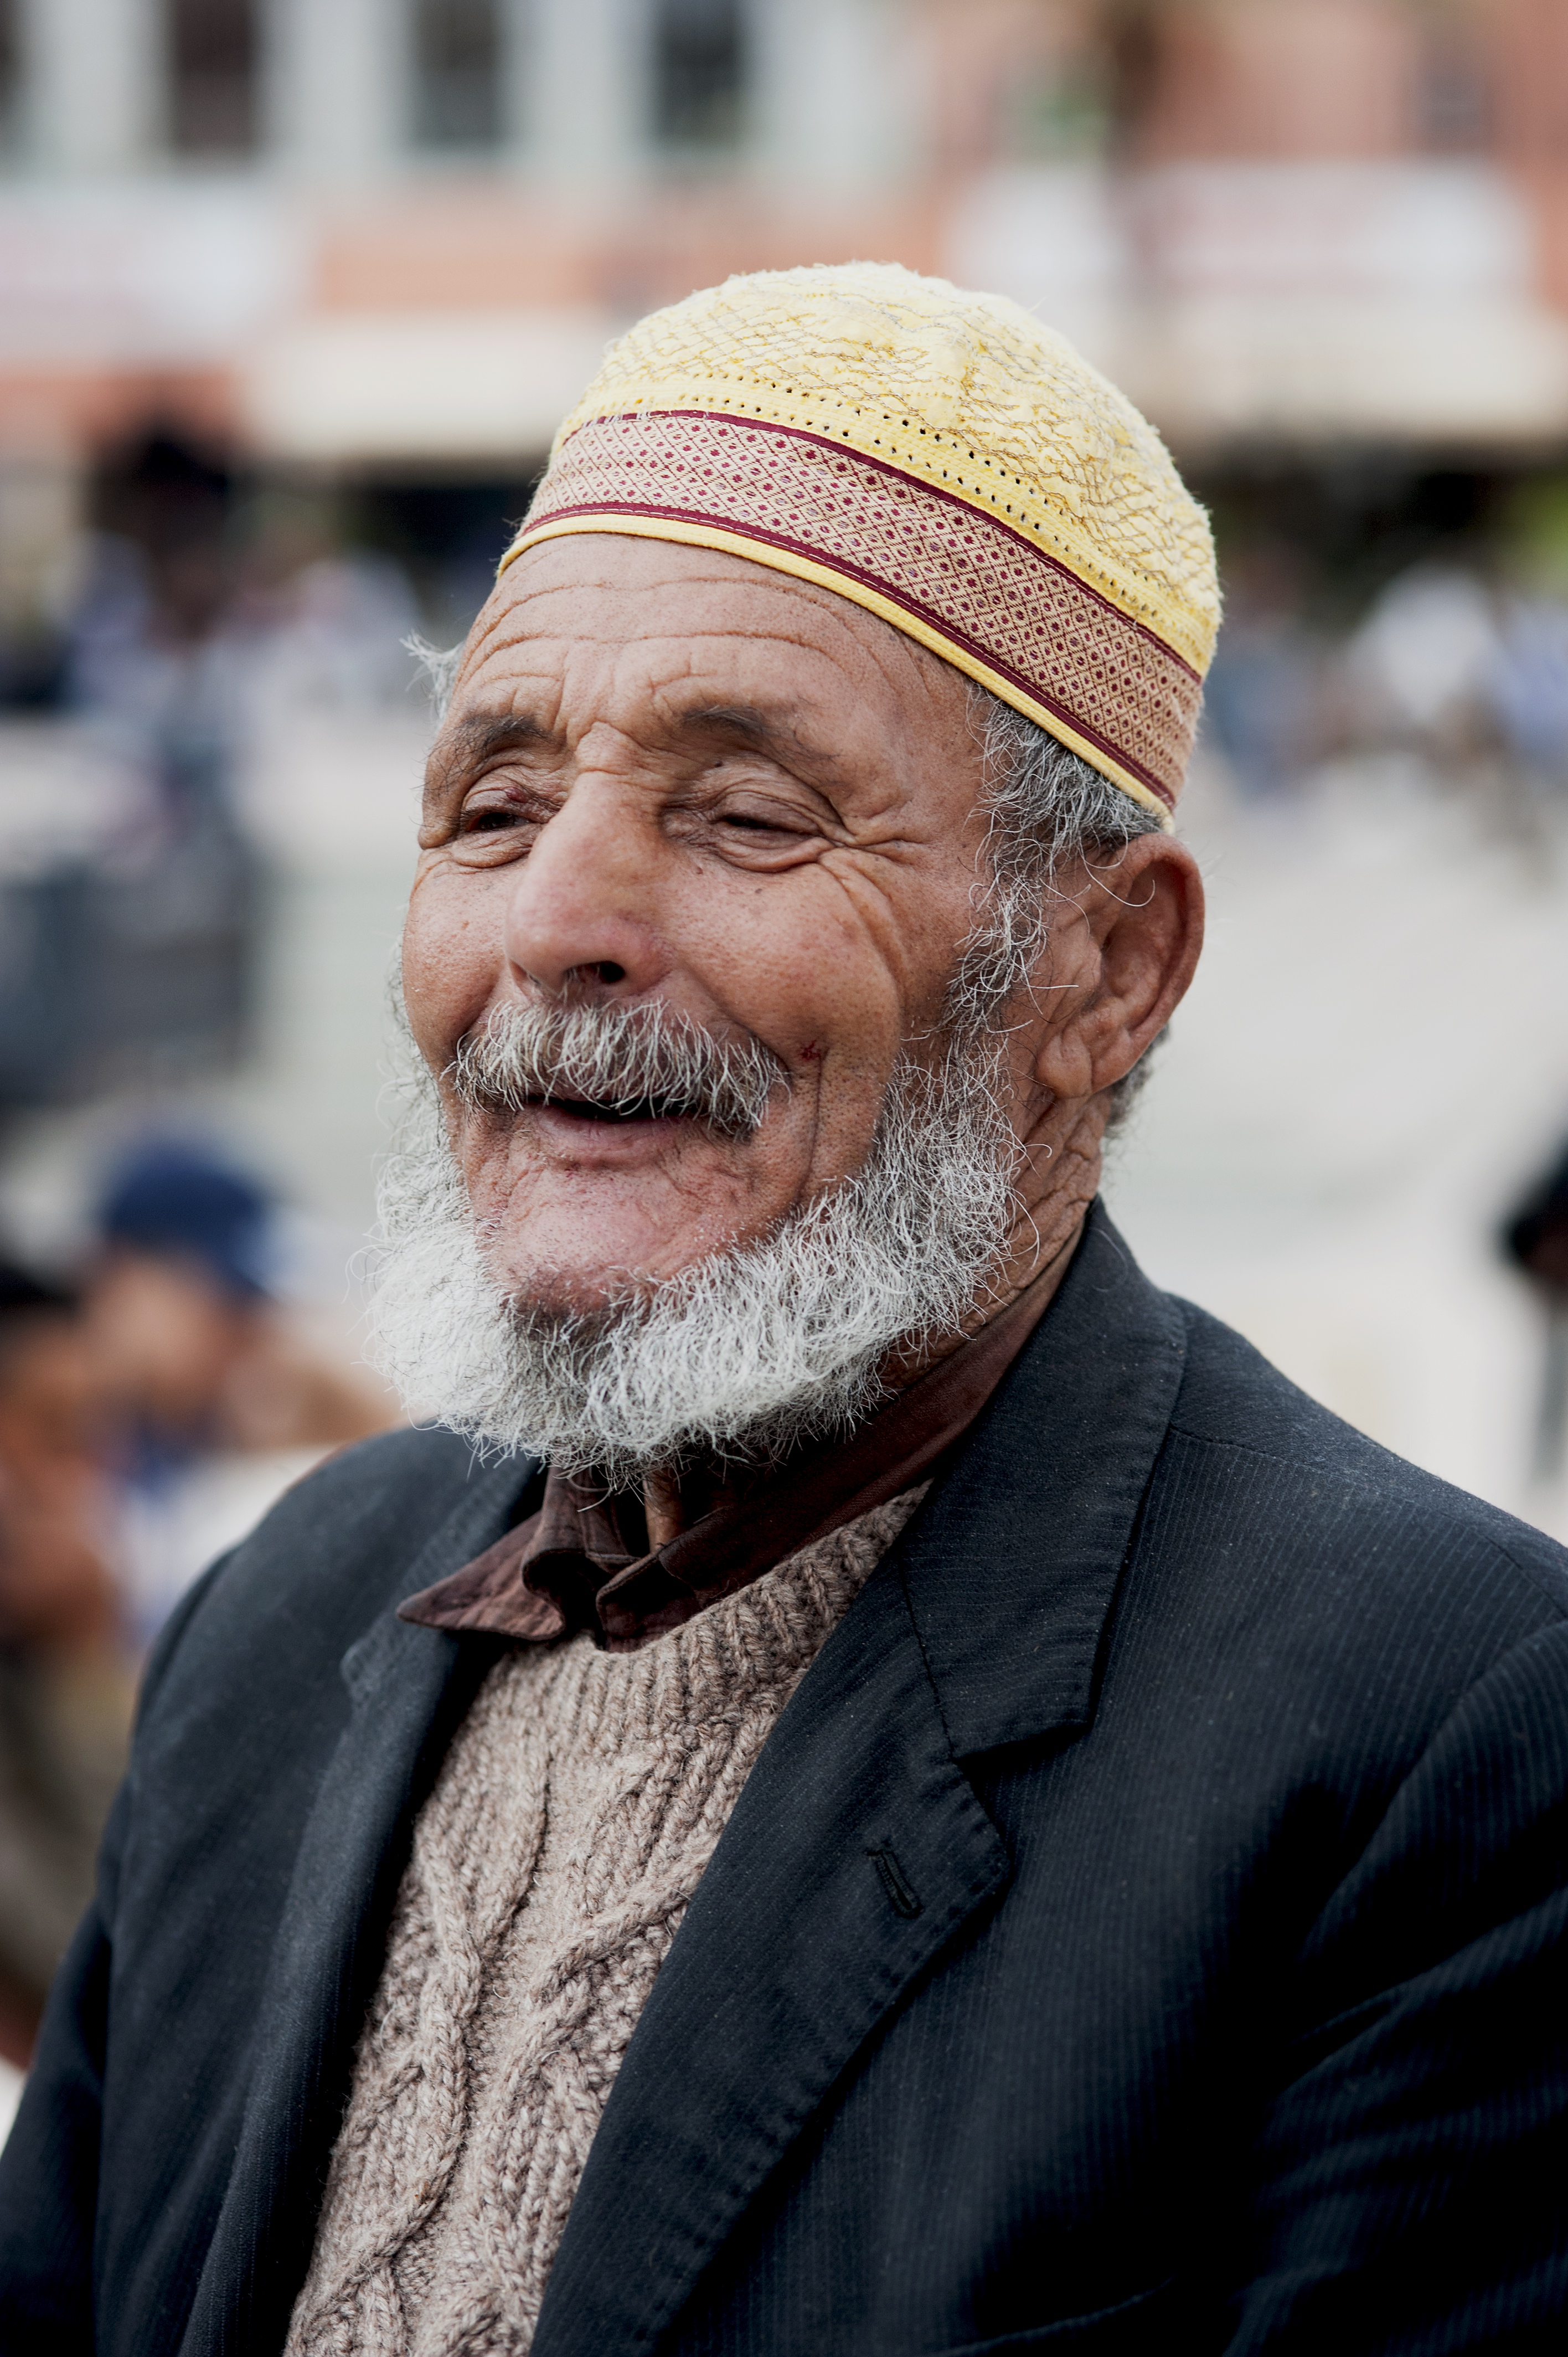 Moroccan man with yellow hat